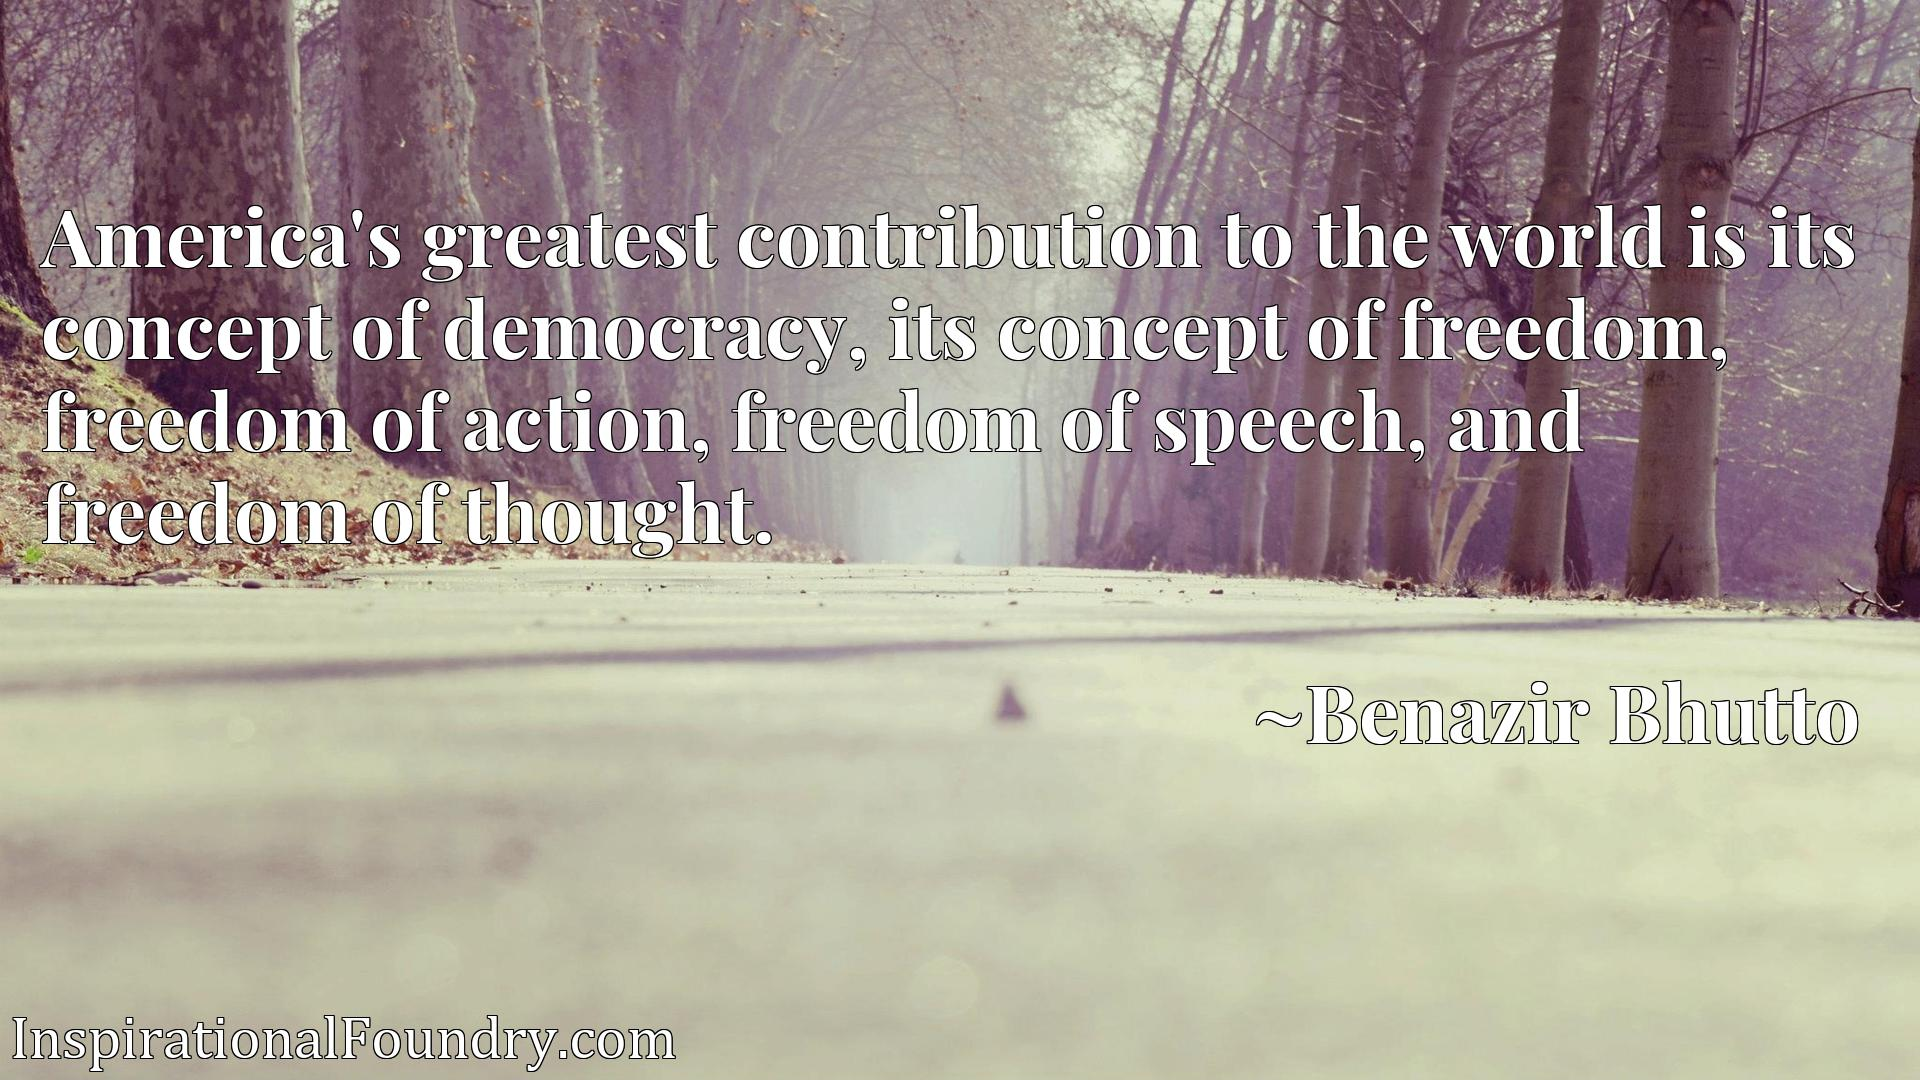 America's greatest contribution to the world is its concept of democracy, its concept of freedom, freedom of action, freedom of speech, and freedom of thought.